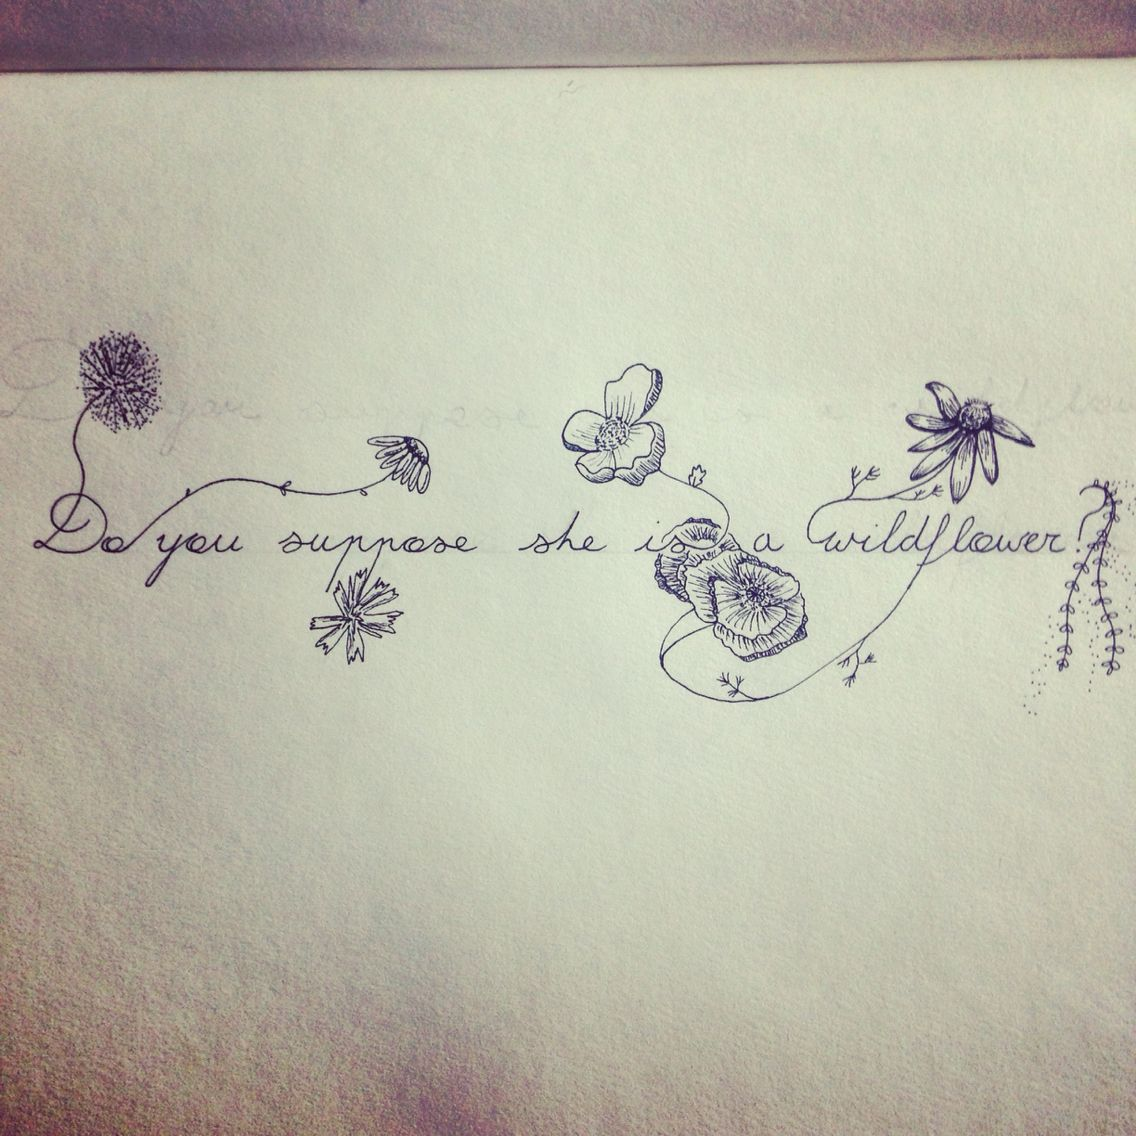 Do you suppose she is a wildflower? Quote by Lewis Carroll from Alice in Wonderland. Drawn out ...